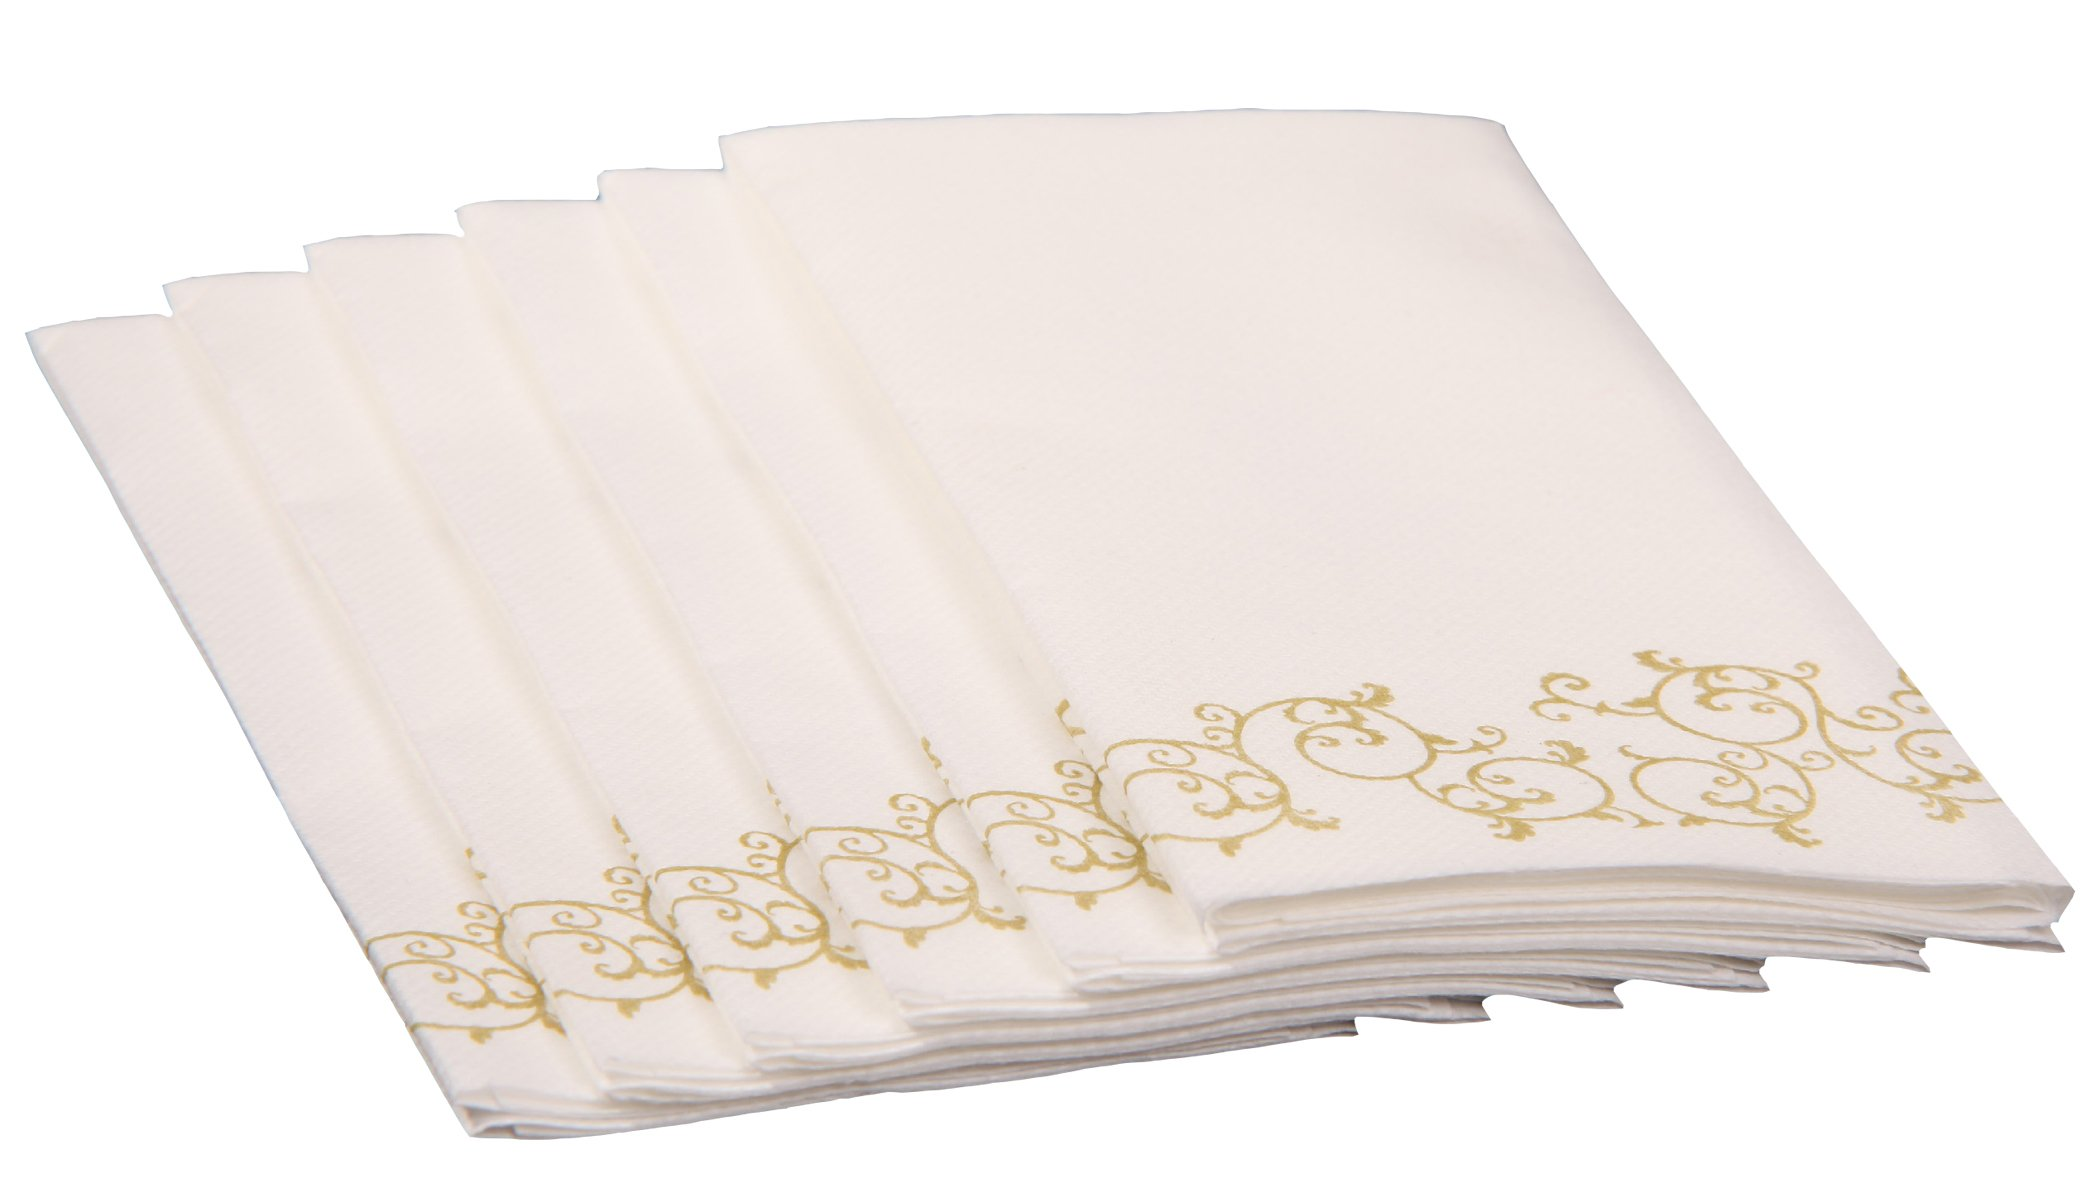 Simulinen Decorative Linen-Feel Bathroom Hand Towels – GOLD Floral Disposable Paper Towels for Guests – Box of 100 – Perfect Size: 12x17 inches unfolded & 8.5x4 inches folded